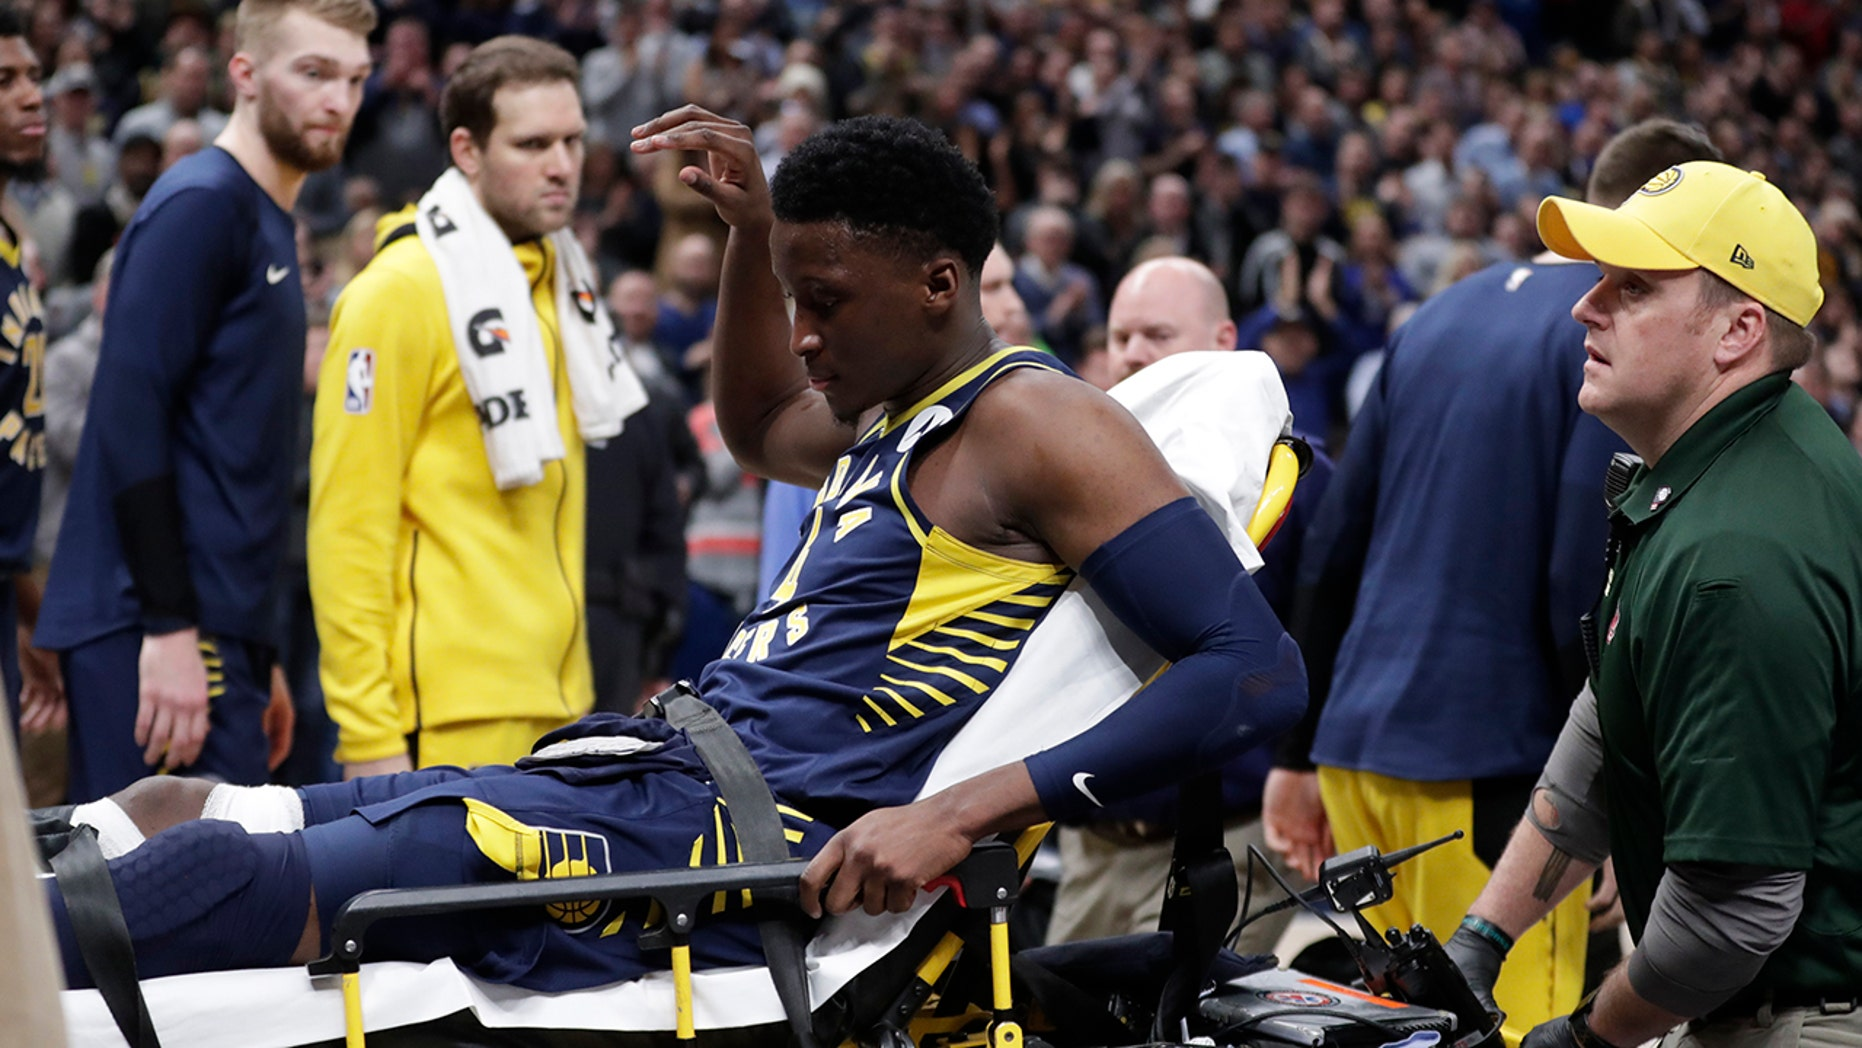 Indiana Pacers guard Victor Oladipo is taken off the court on a stretcher after he was injured during the first half of the team's NBA basketball game against the Toronto Raptors in Indianapolis, Wednesday, Jan. 23, 2019.